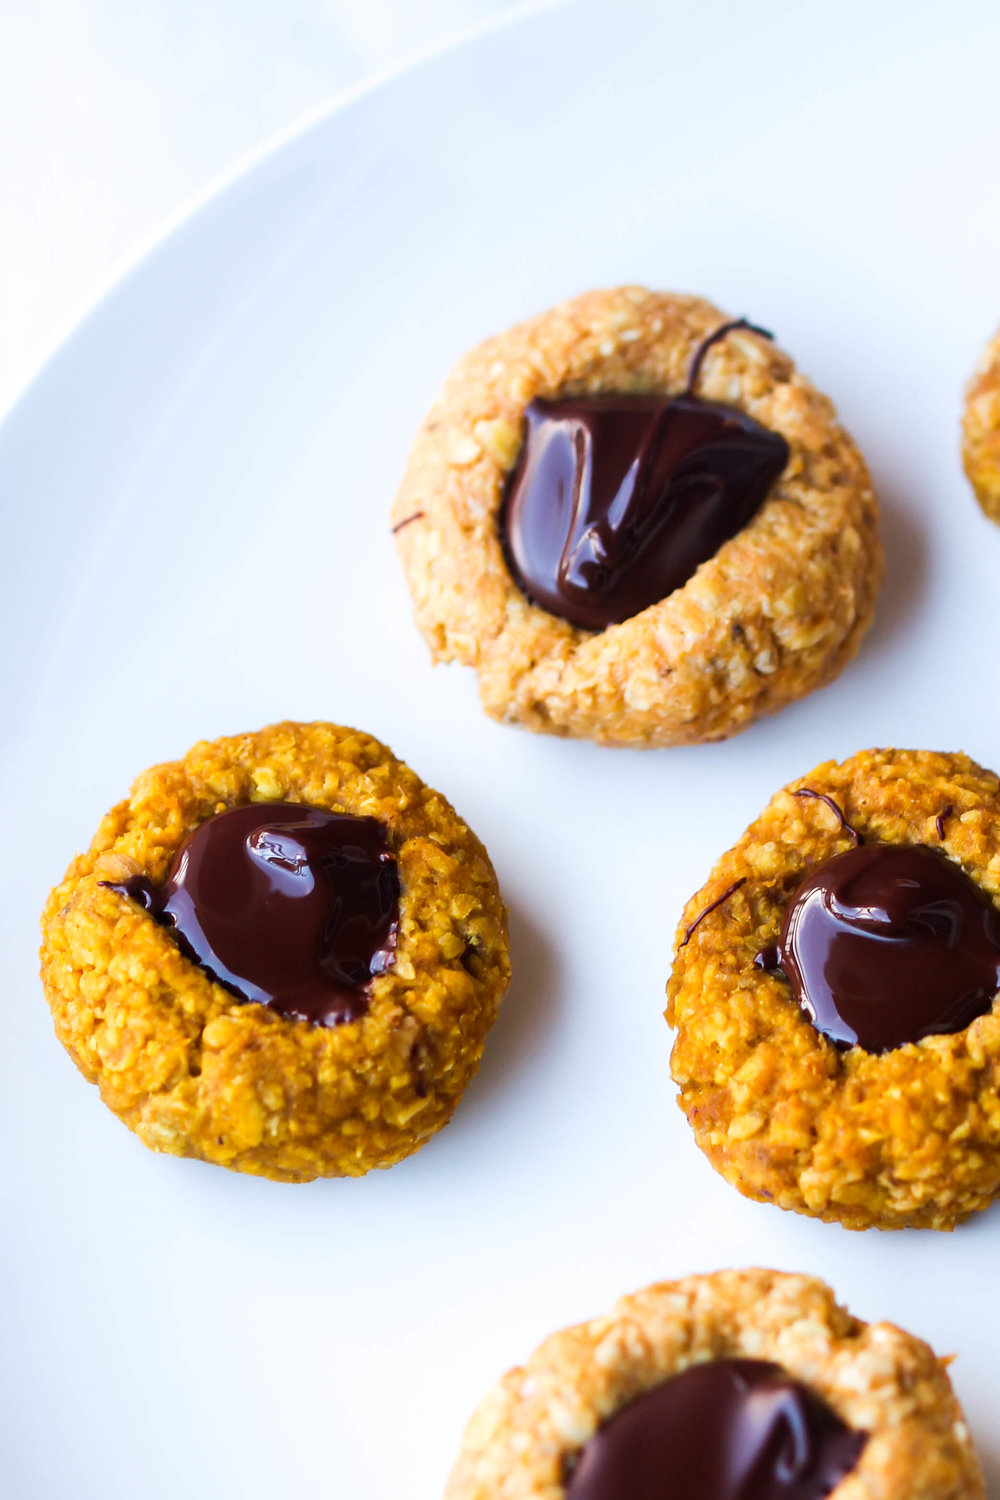 Oat and Pumpkin Thumbprint Cookies - Made in one bowl, great for snacking for both kids and adults. Naturally gluten-free, nut-free and can be made vegan friendly or raw.